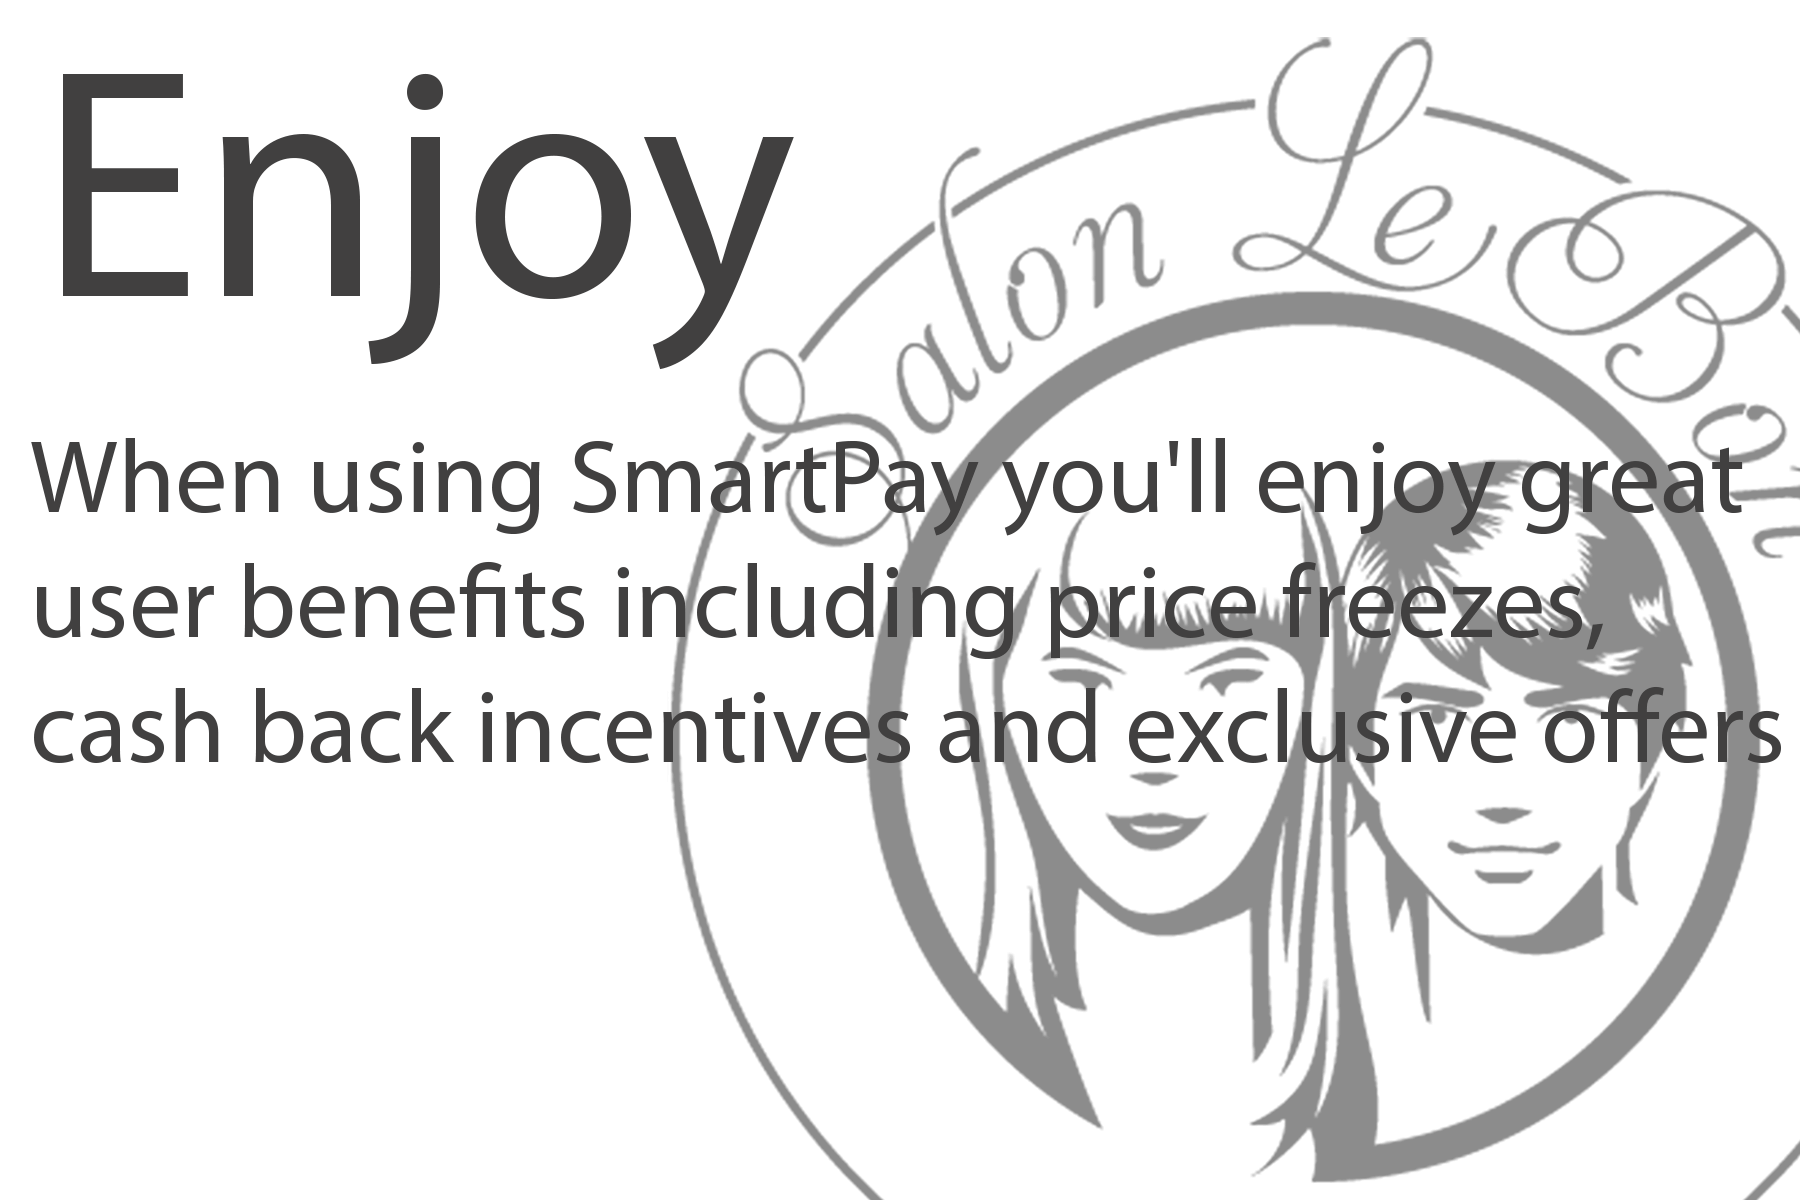 when using smartpay you'll enjoy great user benefits including price freezes, cash back incentives and exclusive offers